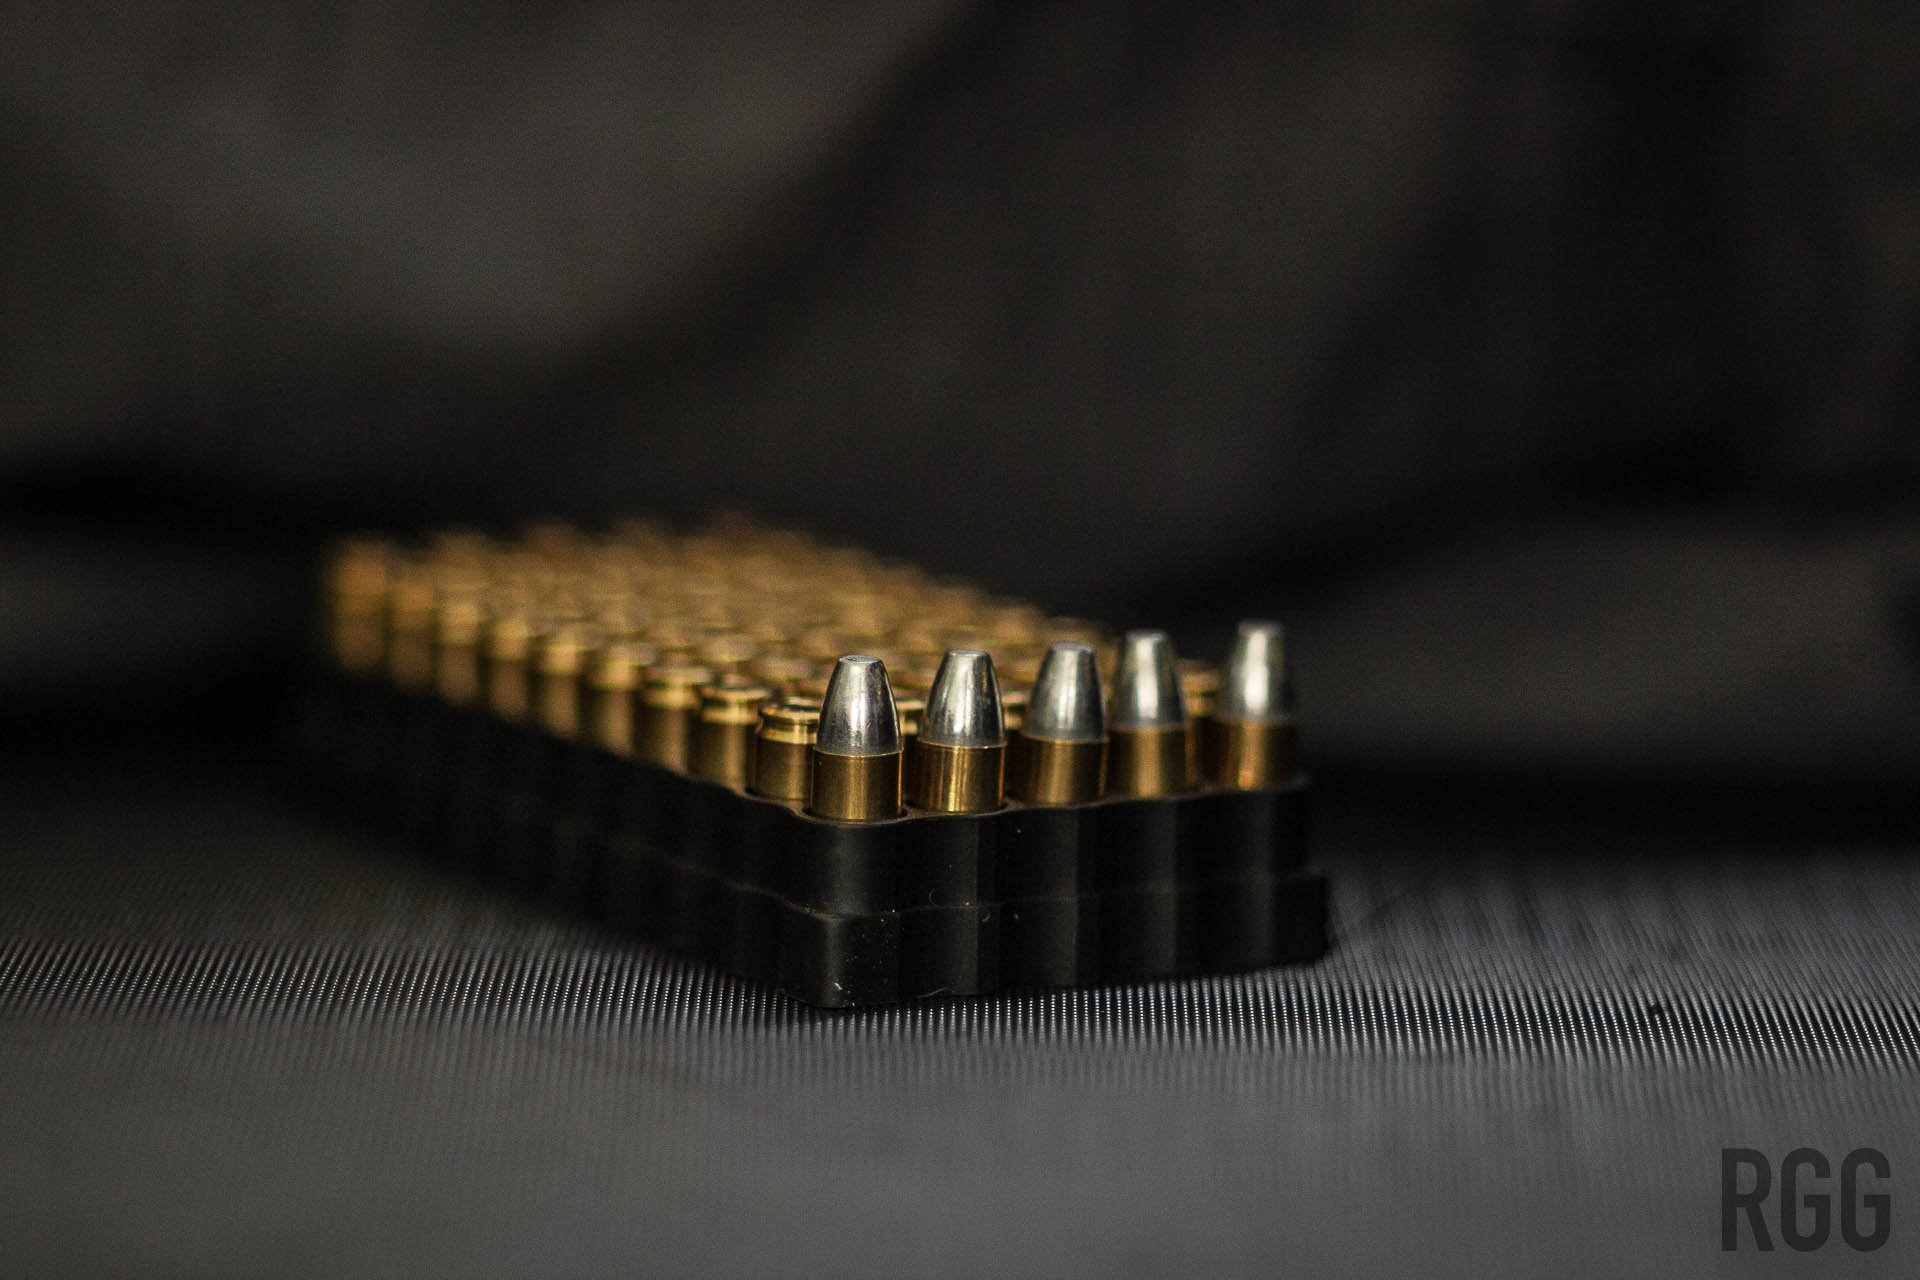 Z-Clean 9mm 100gr solid zinc projectile lead-free ammunition.